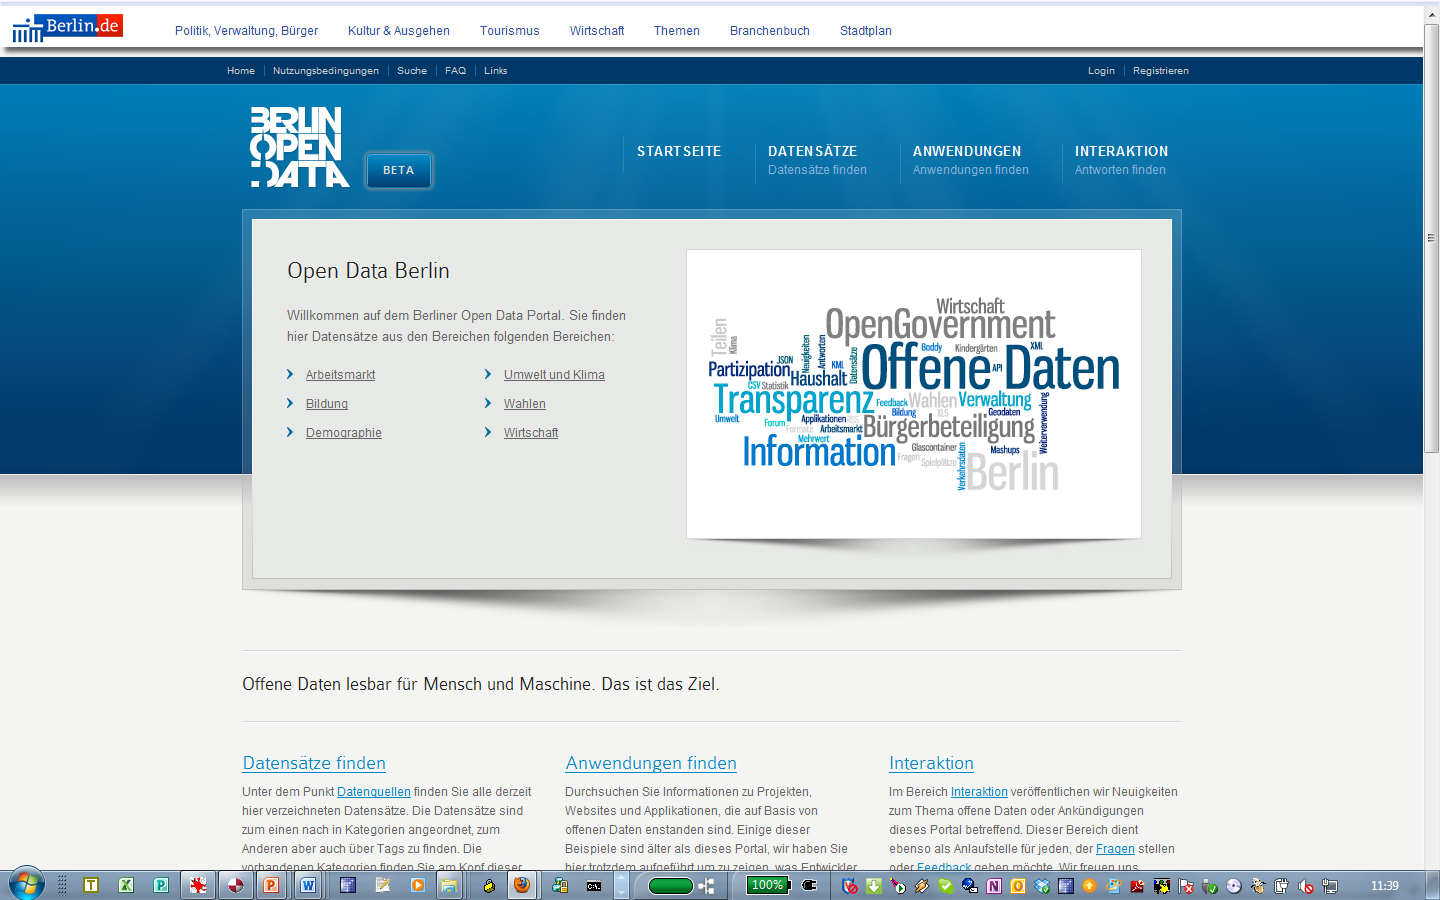 Berlin Open Data Portal Making Open Data Real http://daten.berlin.